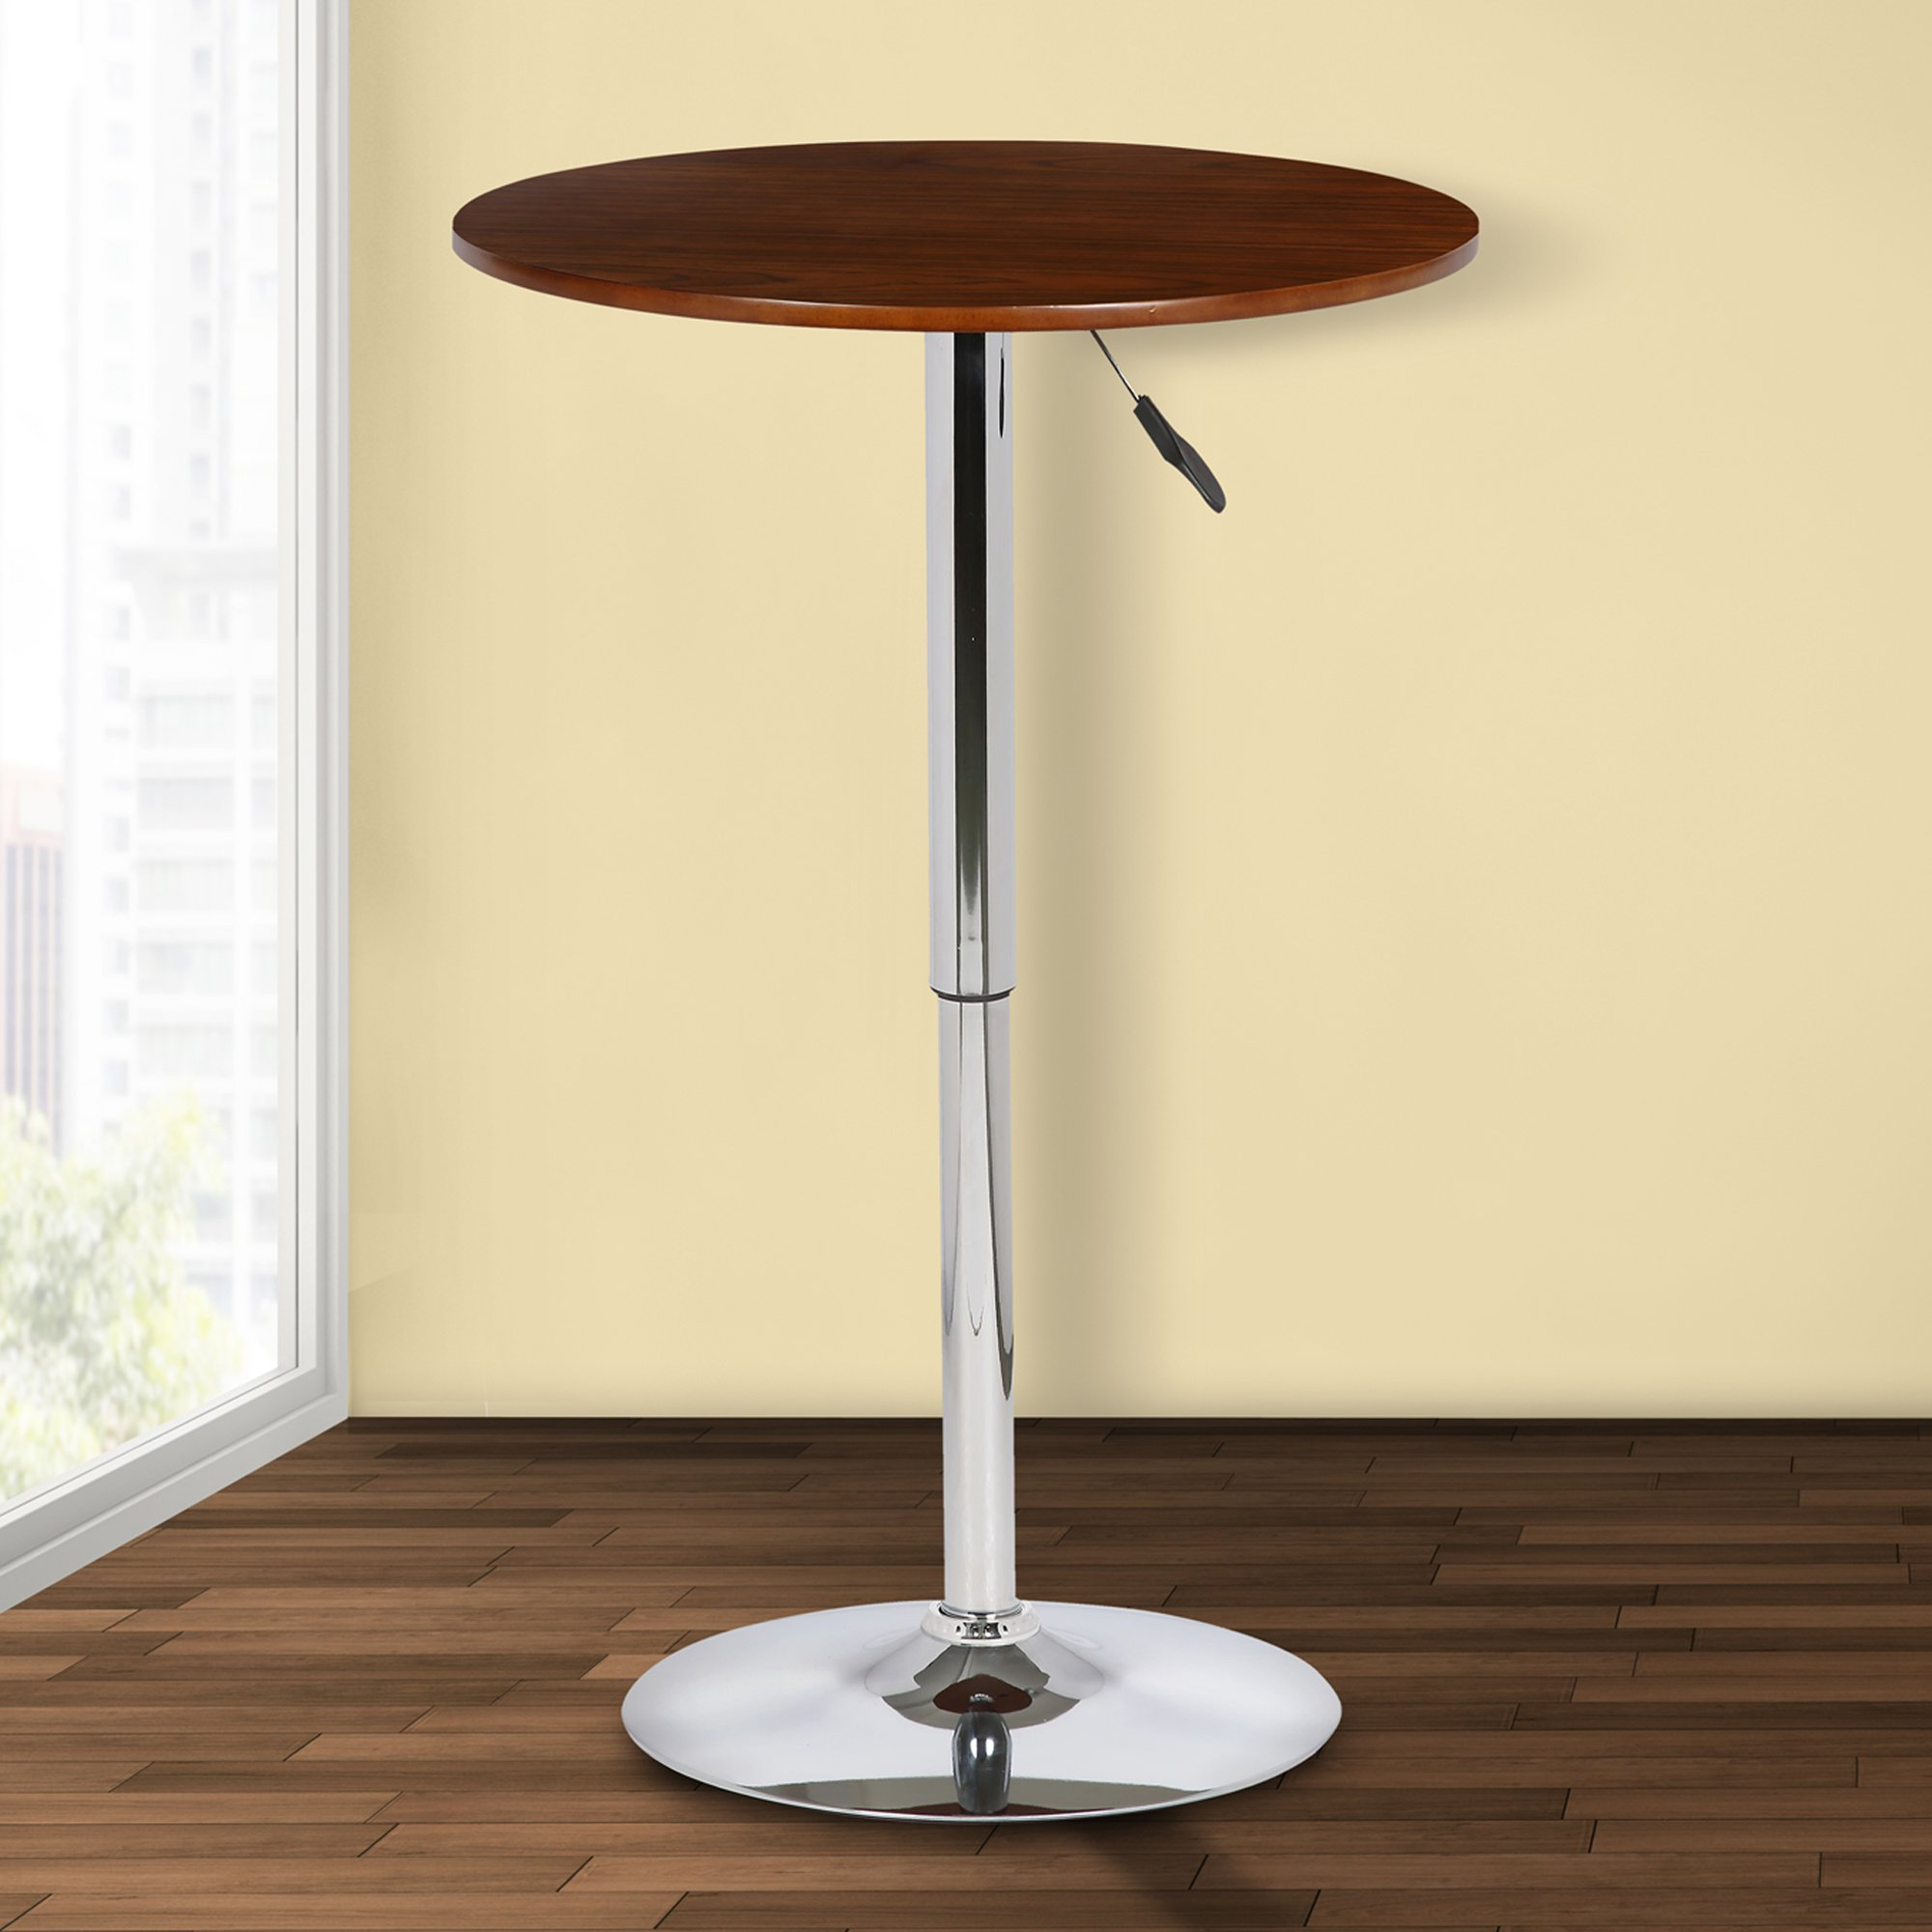 Armen Living Bentley Adjustable Pub Tables with Walnut Wood Finish Wood and Chrome Finish by Armen Living